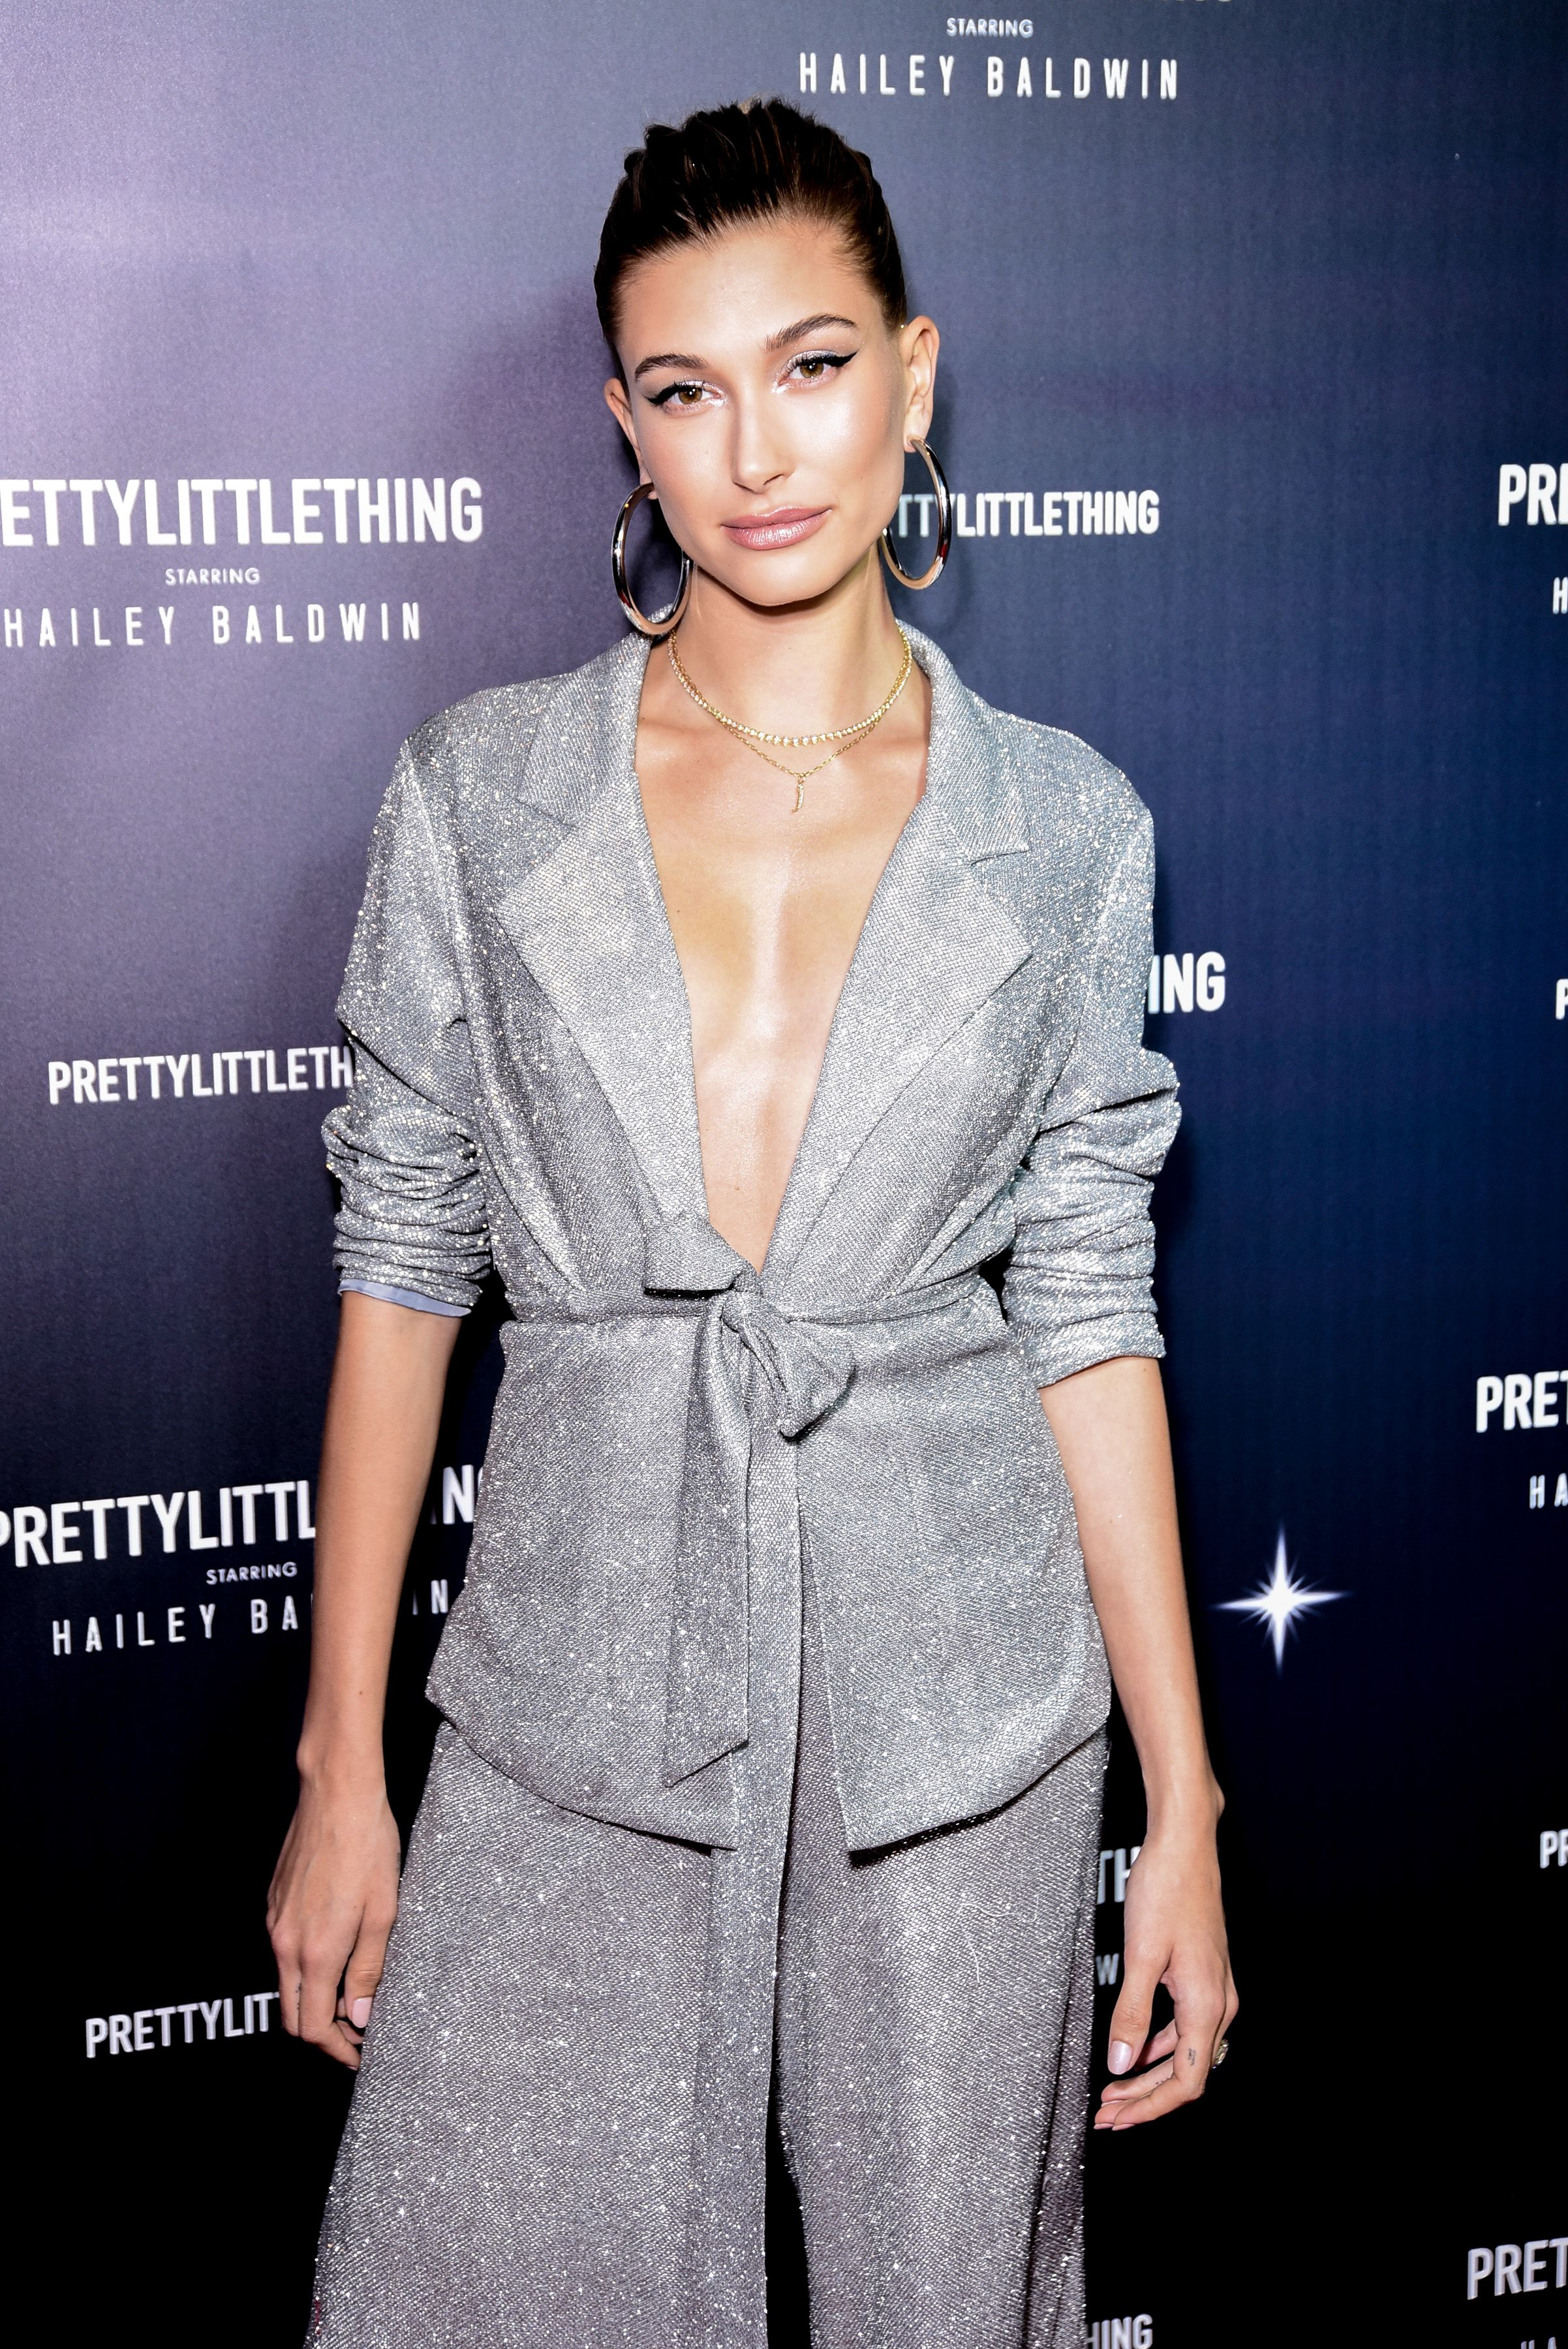 cd6891c455 Hailey Baldwin Celebrated PrettyLittleThing Campaign Without Justin Bieber  and in Glitzy $83 Suit